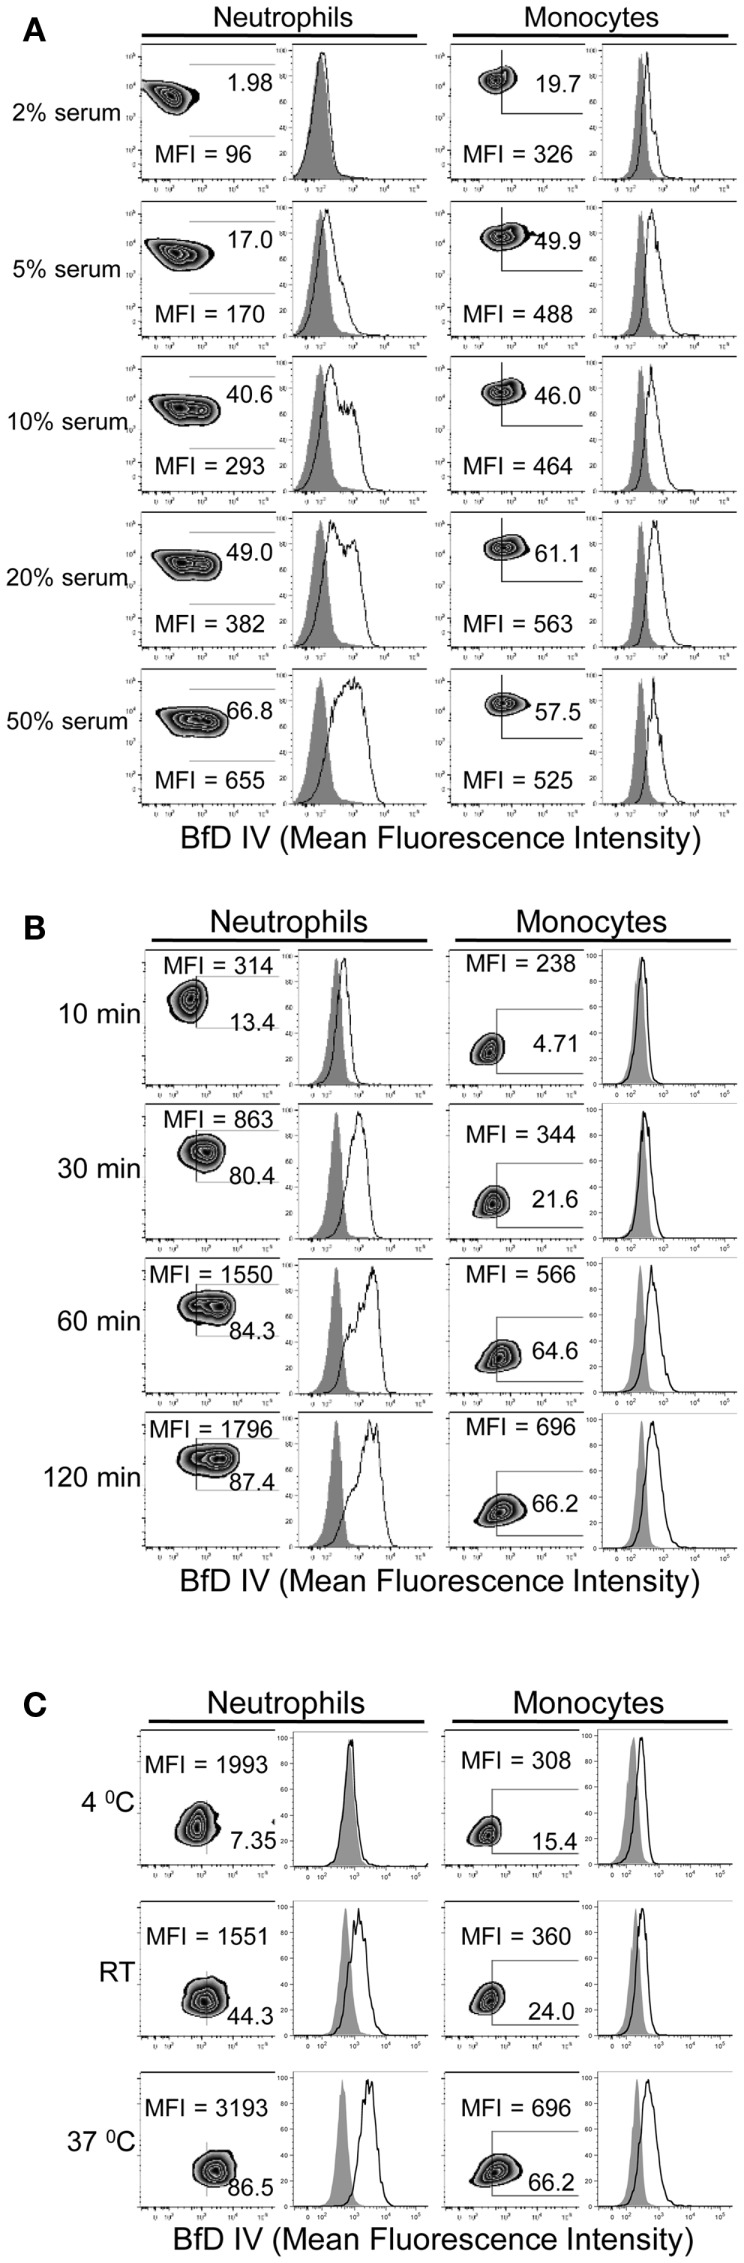 Time, temperature, and serum-dependent binding of PGG β-glucan to human neutrophils and monocytes . PGG β-glucan binding to human neutrophils and monocytes was determined (A) in the presence of 2, 5, 10, 20, and 50% of serum, (B) at 10, 30, 60, and 120 min, and (C) at RT, 4 and 37°C. The MFI and percentage of BfD IV positive cells were indicated in the zebra plots, and histogram shows PGG β-glucan binding (solid) in comparison to the vehicle-control (gray filled). Data shown in each of the conditions are representative of three independent experiments performed with cells obtained from three different donors.